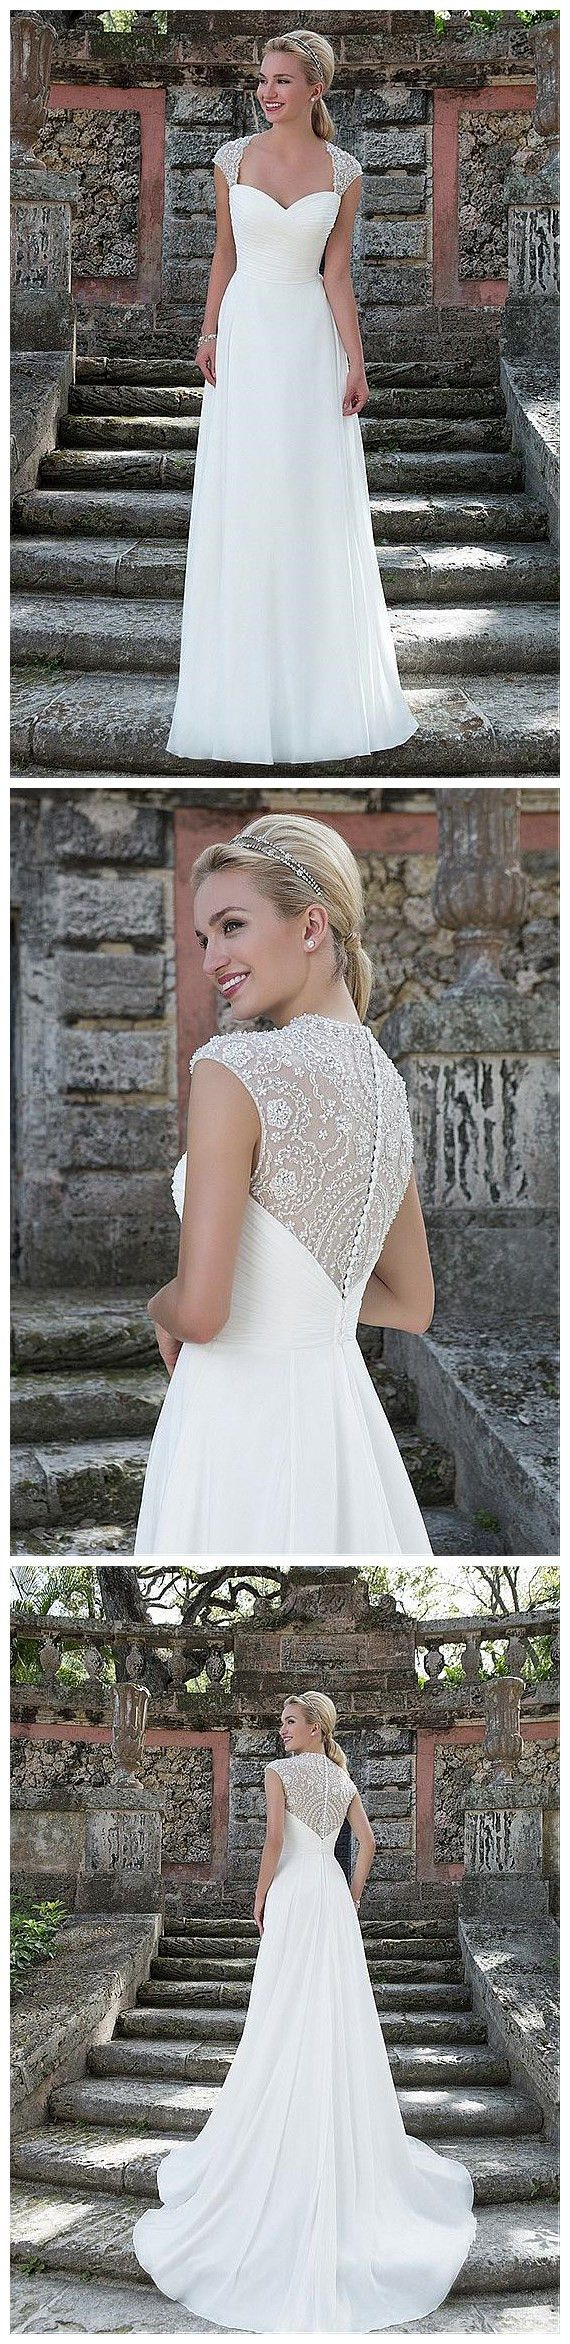 Brilliant Tulle & Chiffon Queen Anne Neckline A-line Wedding Dresses with Beaded Embroidery